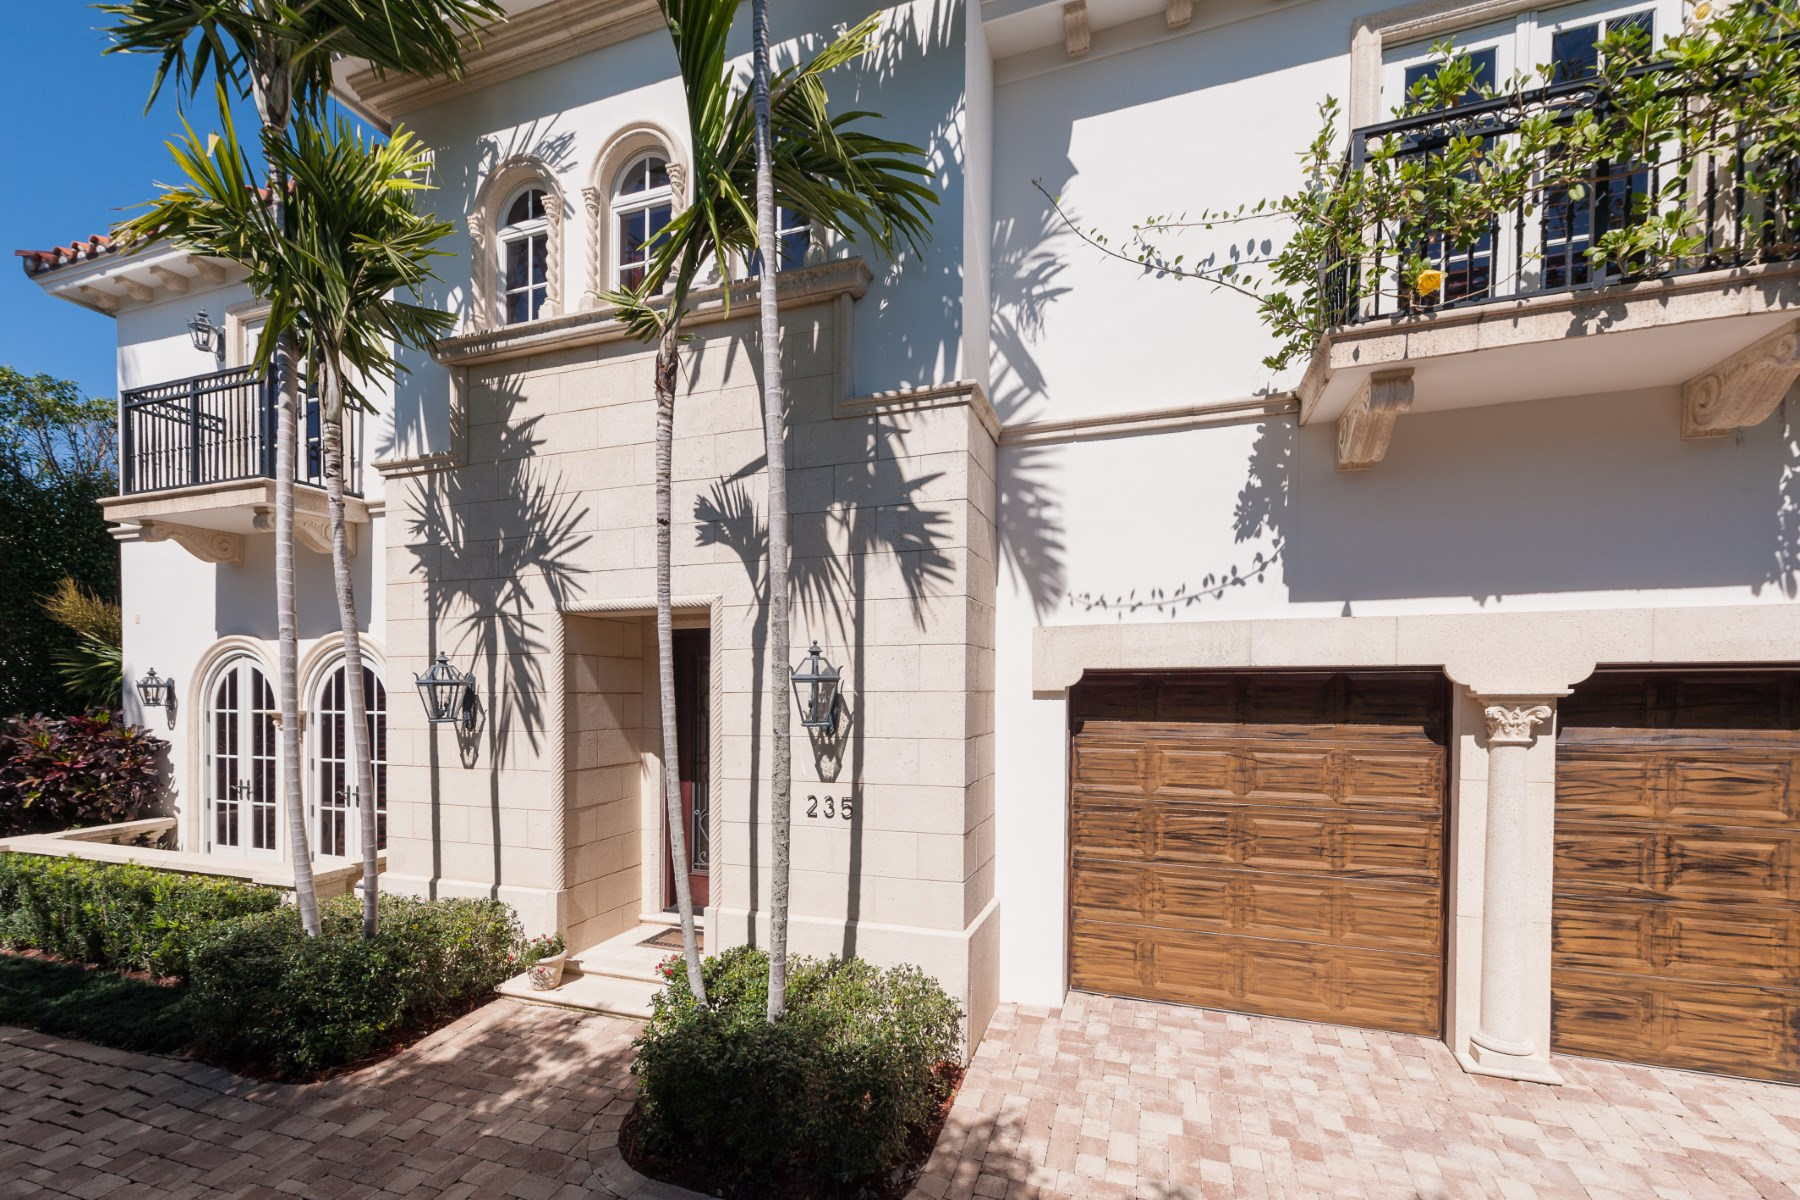 Single Family Home for Sale at Elegant In Town 235 Atlantic Ave Palm Beach, Florida, 33480 United States